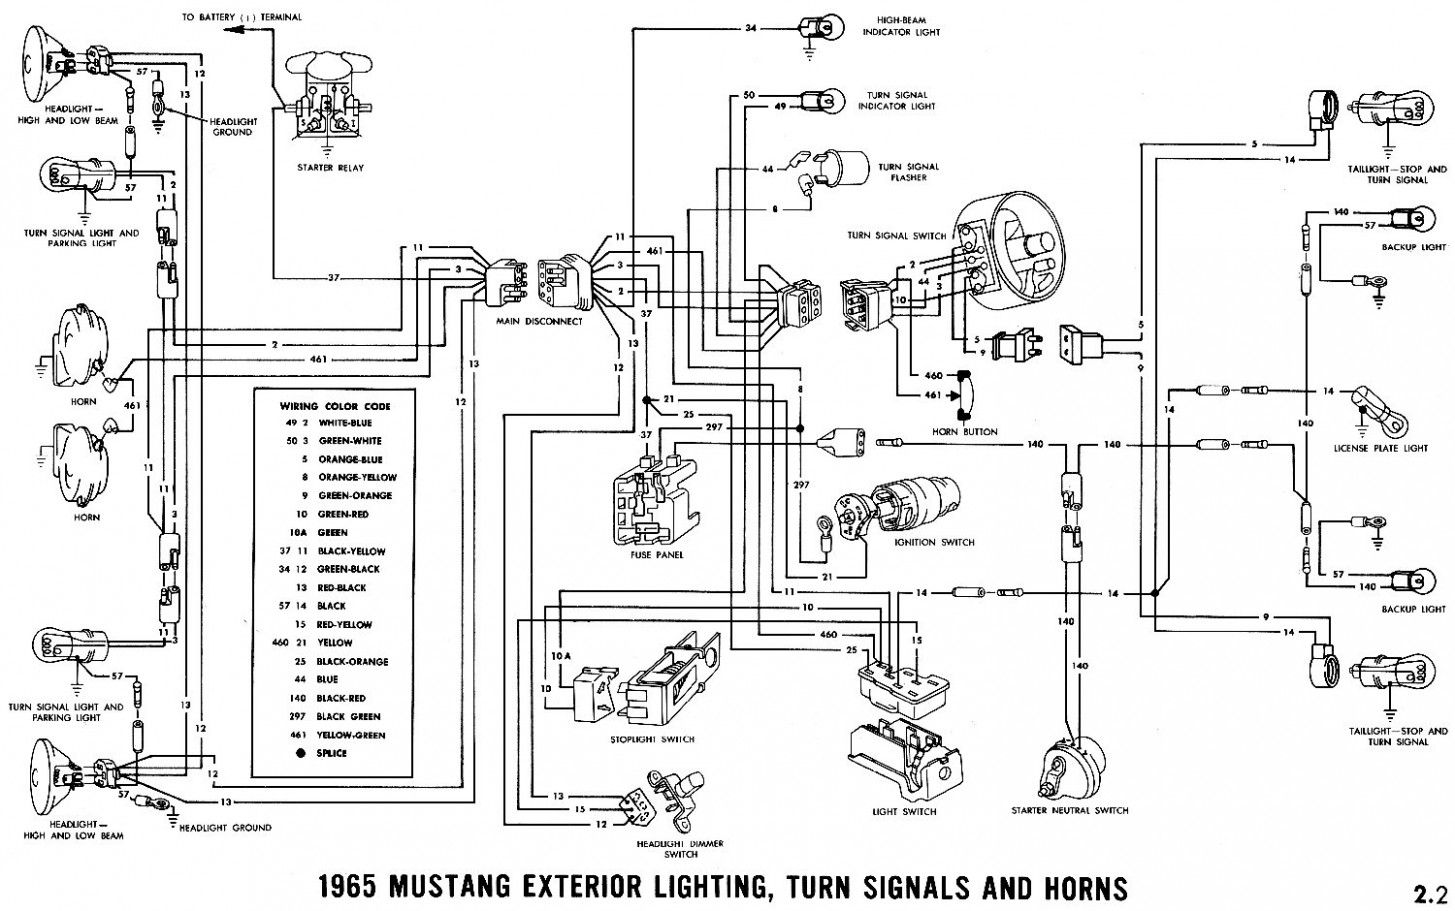 7 Mustang Engine Bay Wiring Diagram 7 Mustang Engine Bay